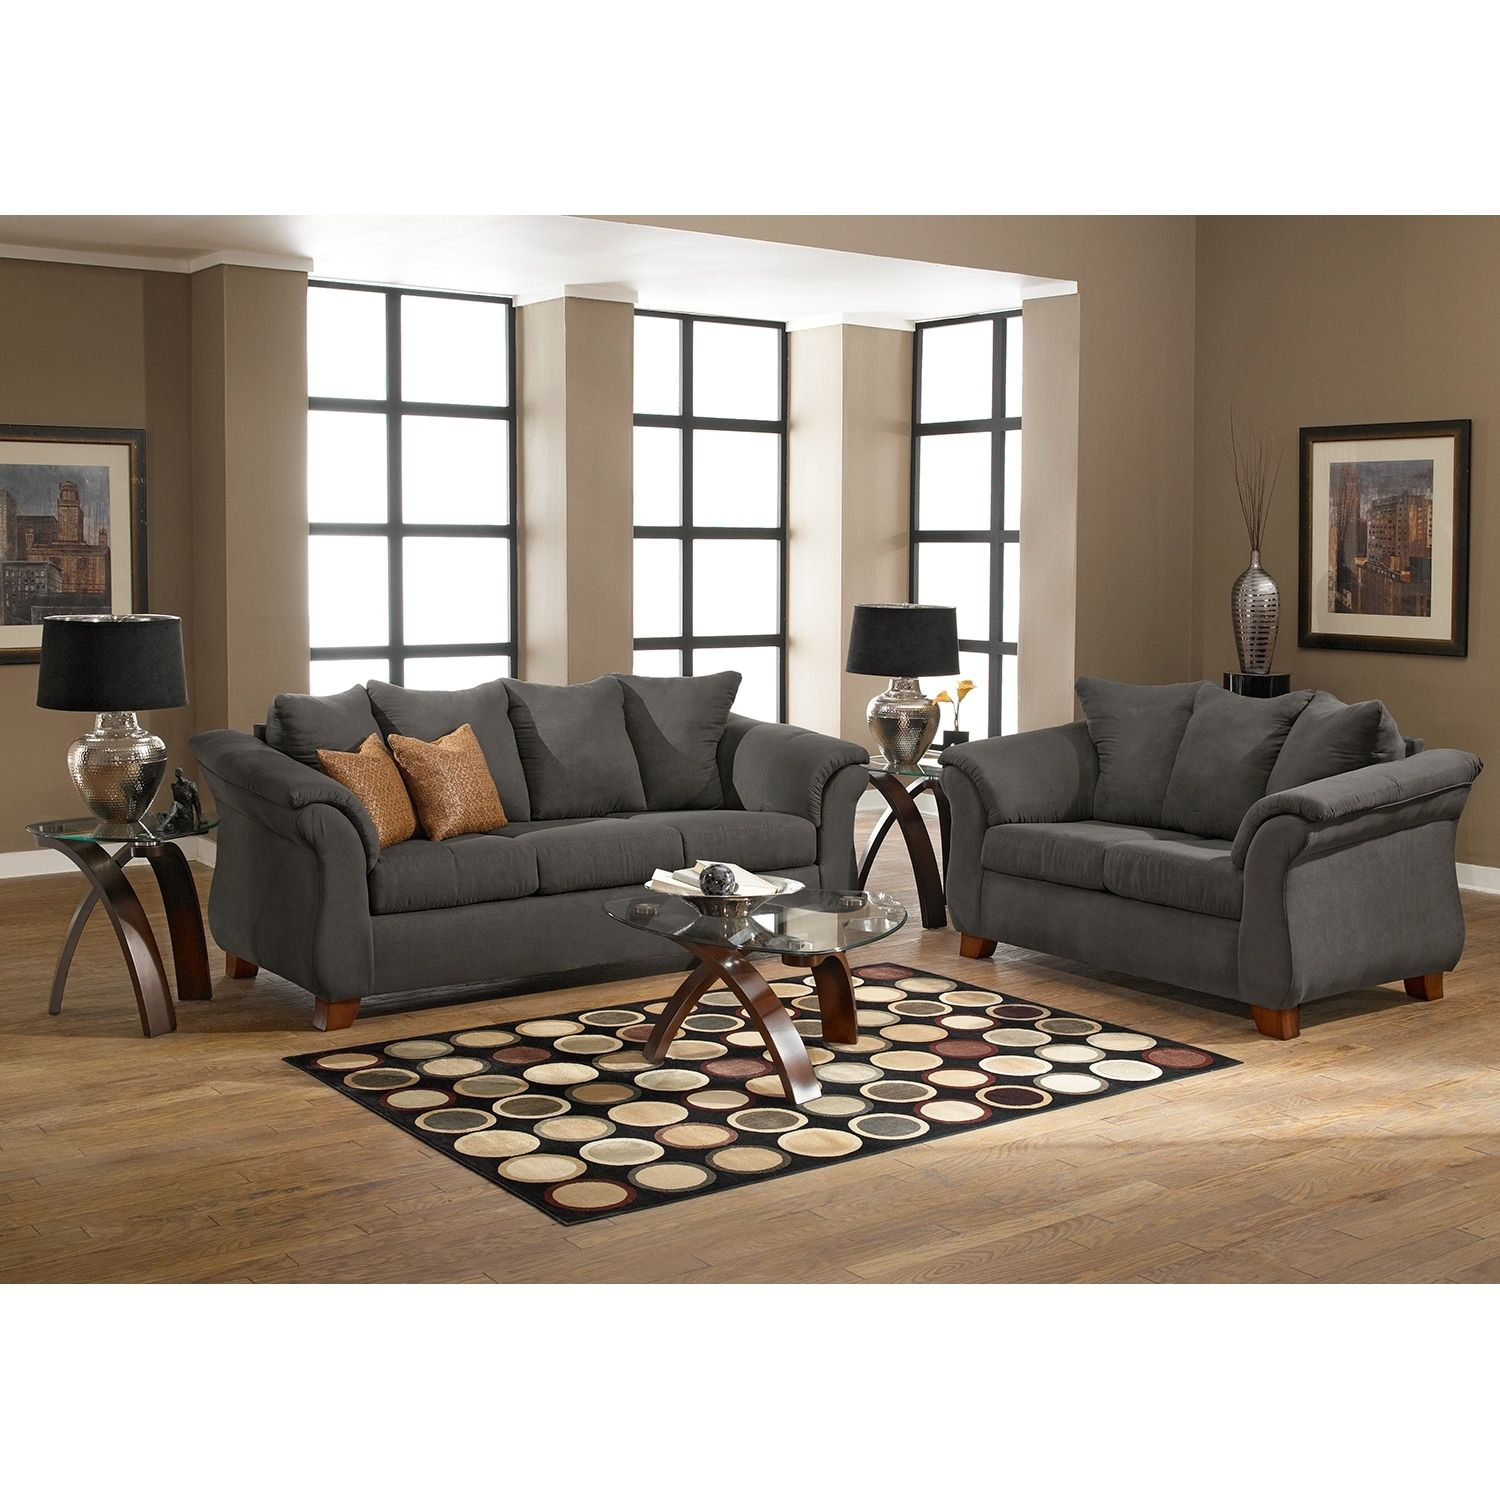 Best Adrian Sofa Taupe Living Room Living Room Sets Value 640 x 480